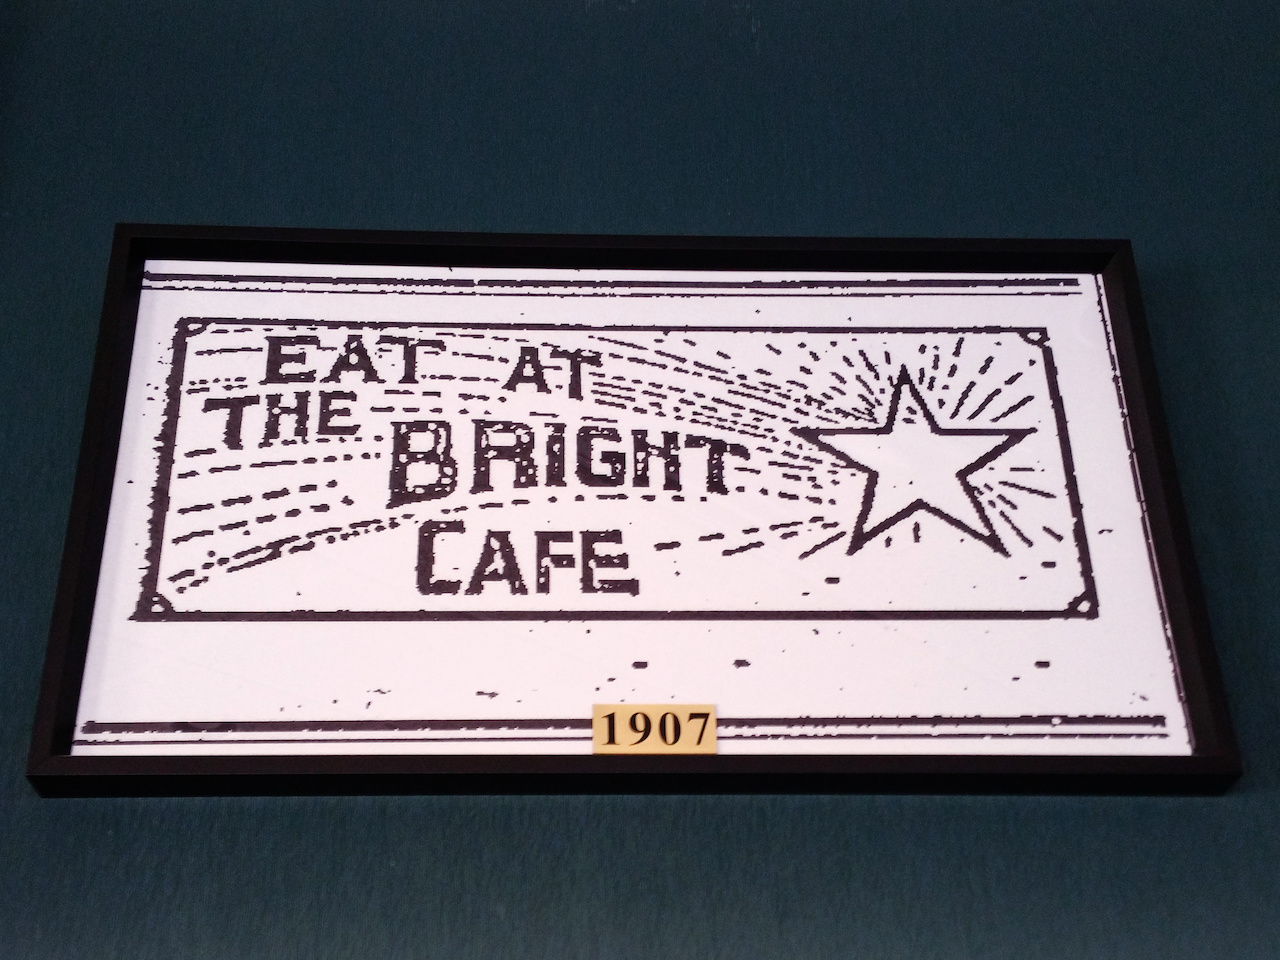 The first art advertising The Bright Star reveals that the star has always been central to the logo. The Bright Star went from a 25-seat cafe to a sprawling restaurant that can seat over 300 people.